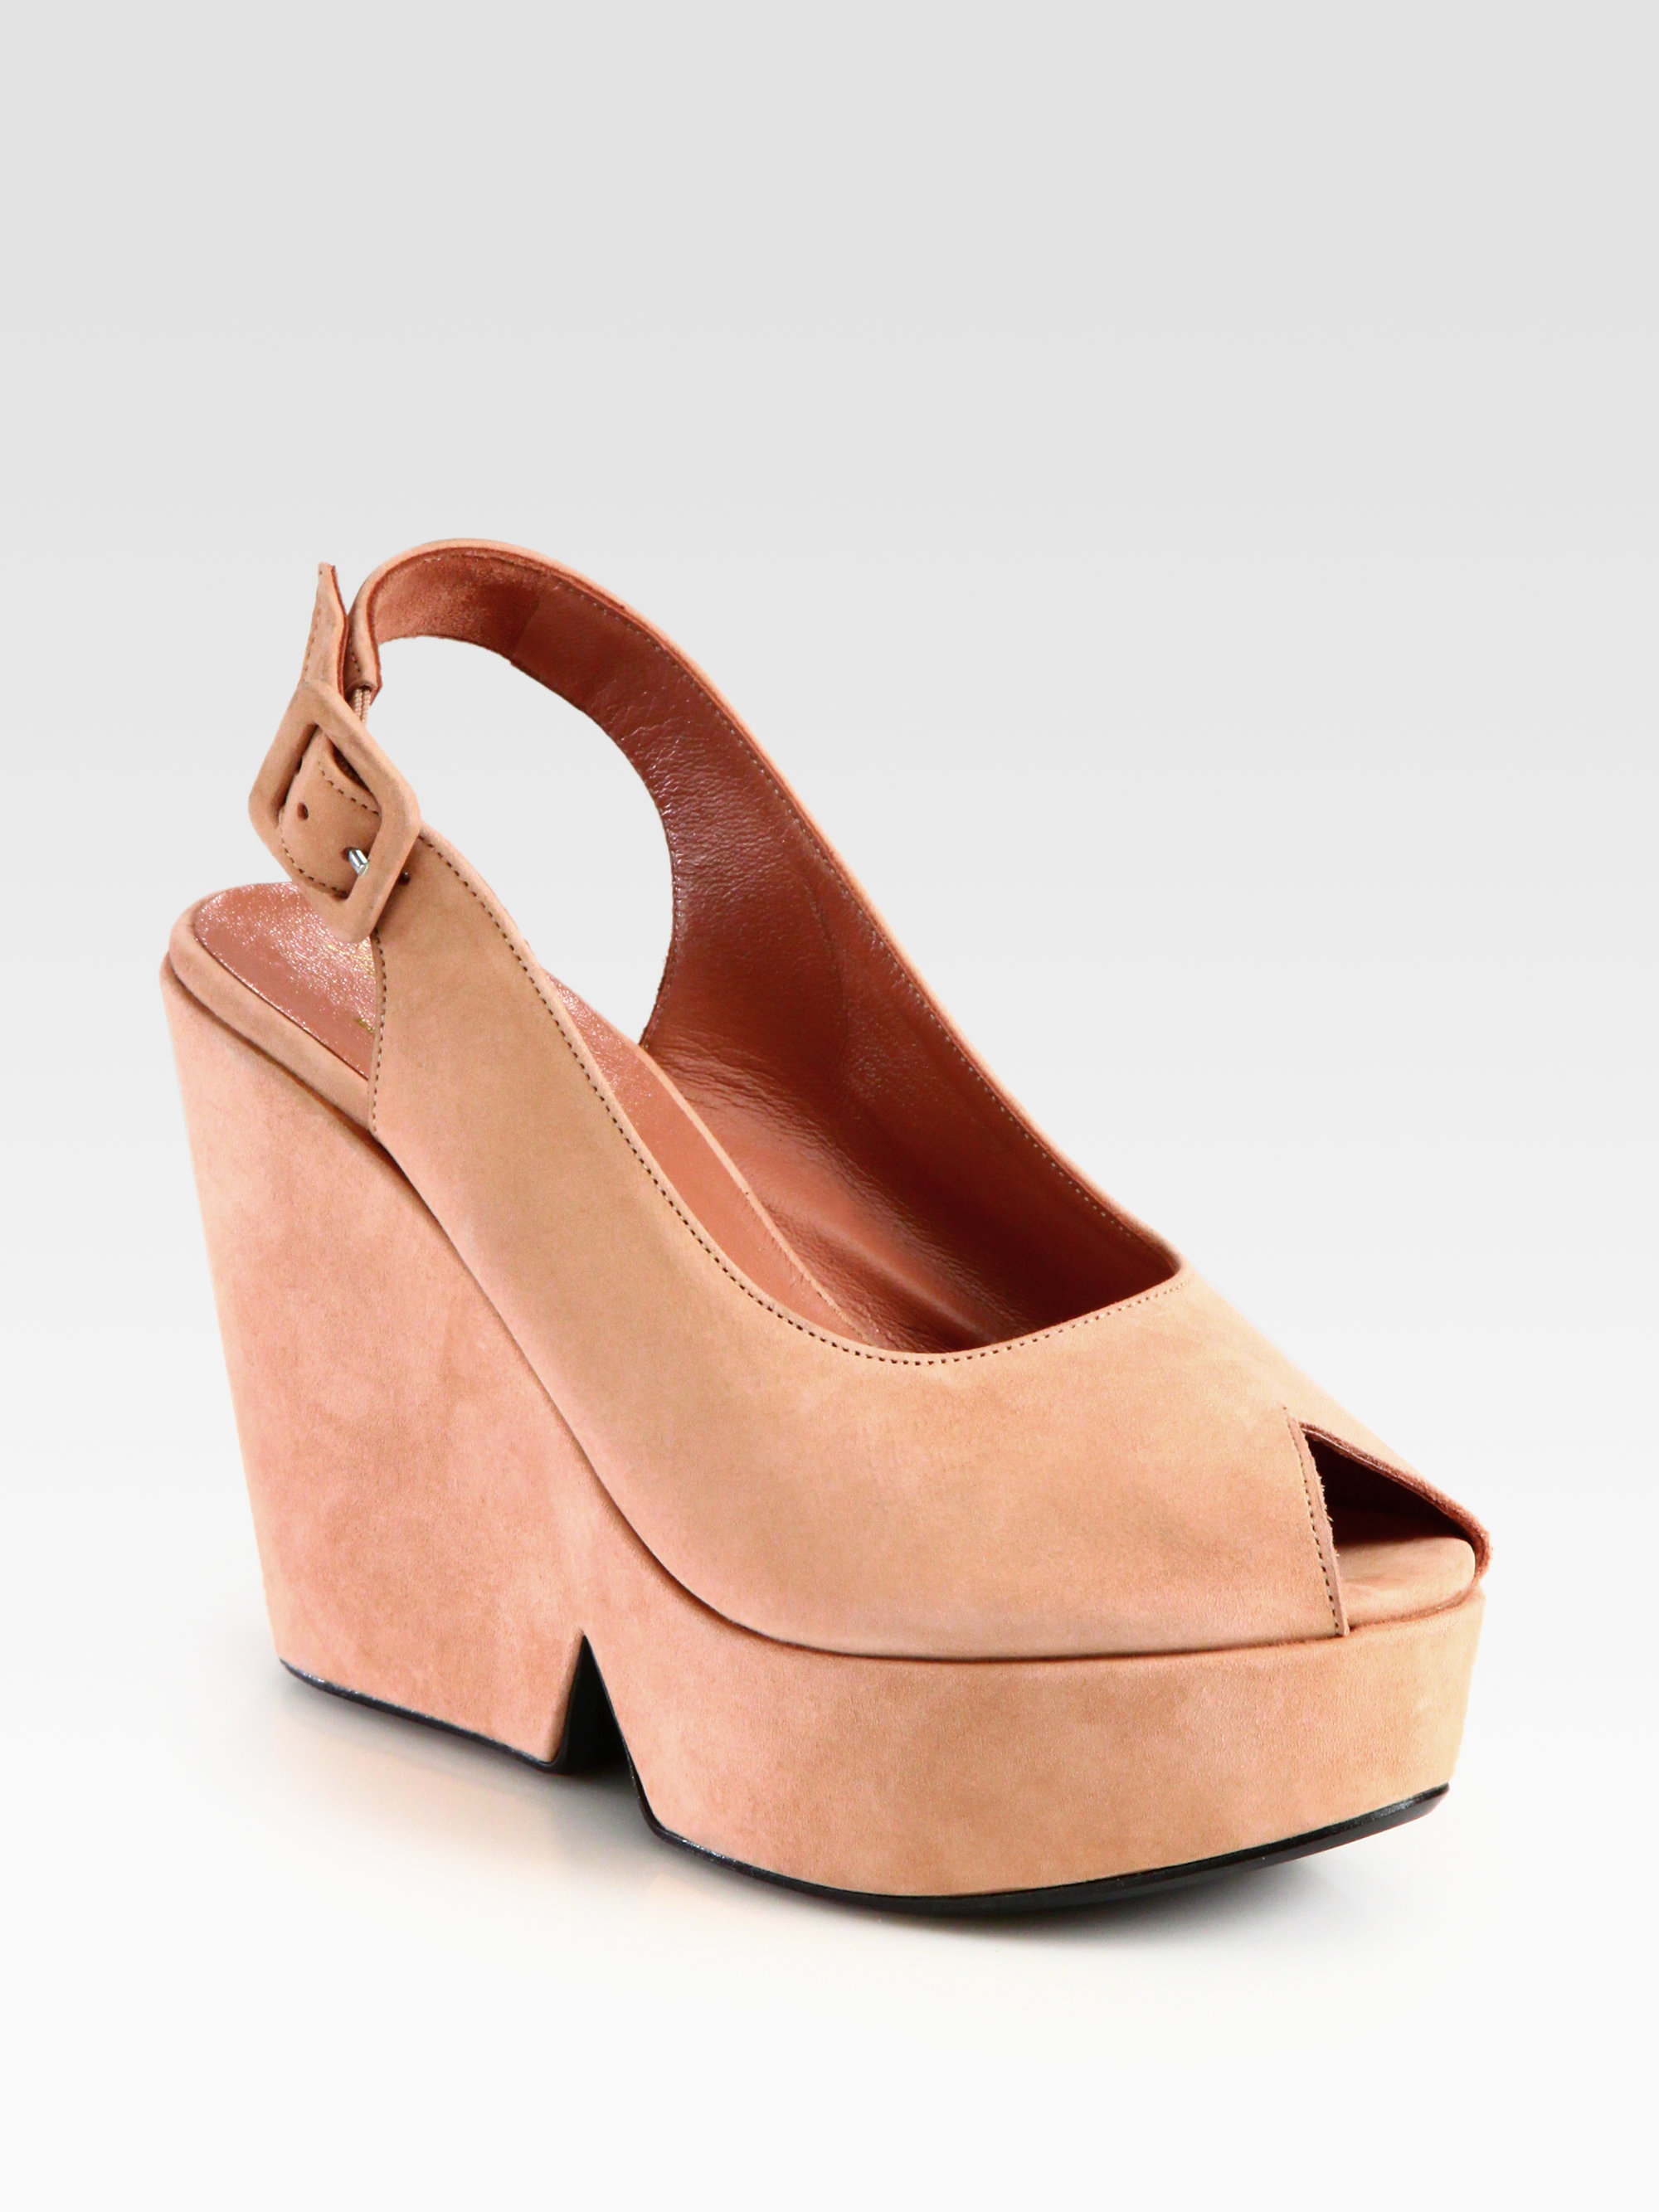 Robert Clergerie Dylan Suede Wedges sale lowest price cheap real finishline HE0SbyZvL